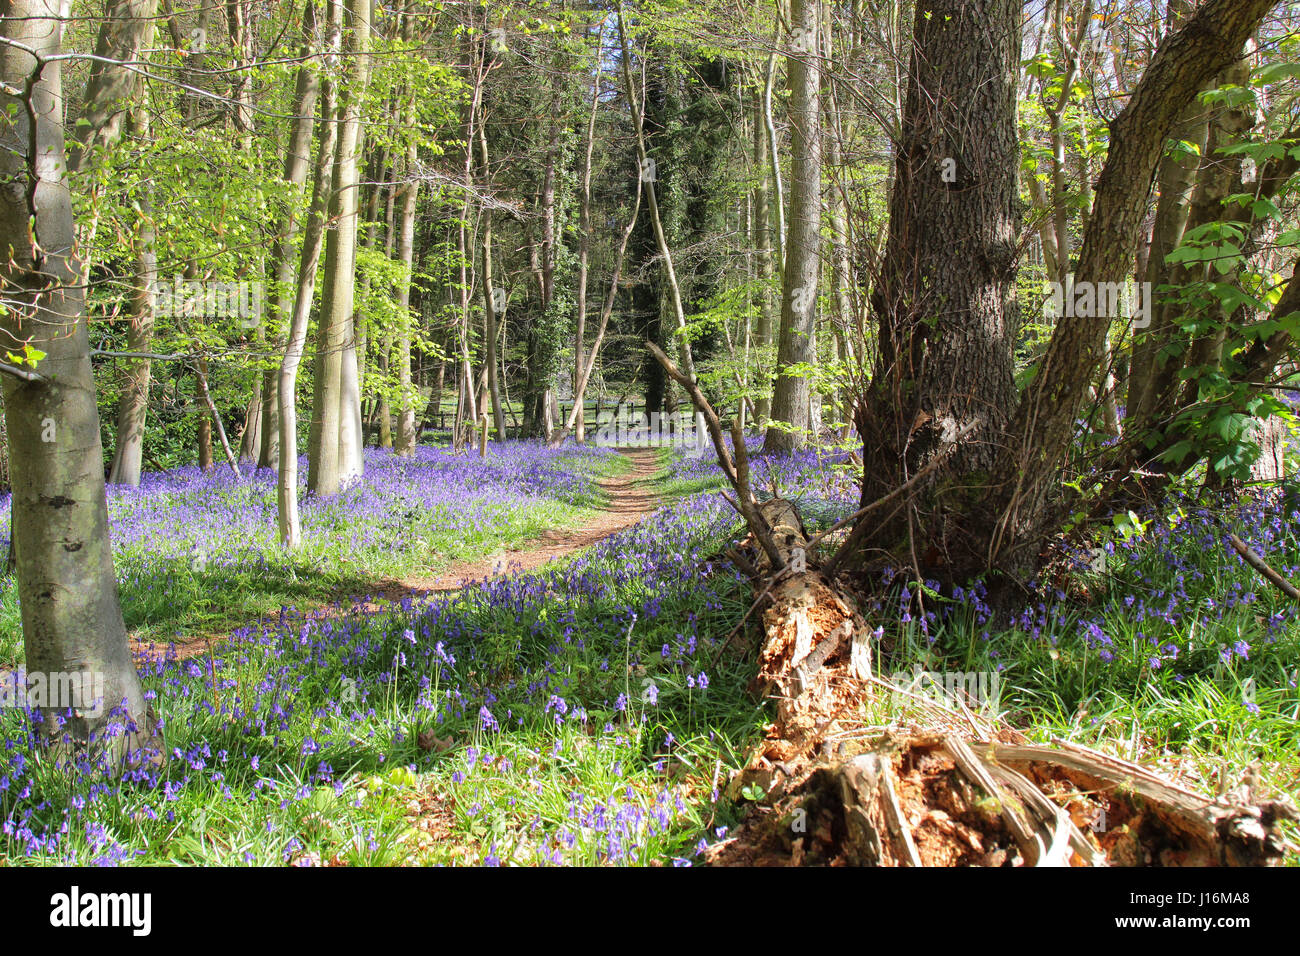 Bluebell woods at Crowthorne, Berkshire UK - Stock Image